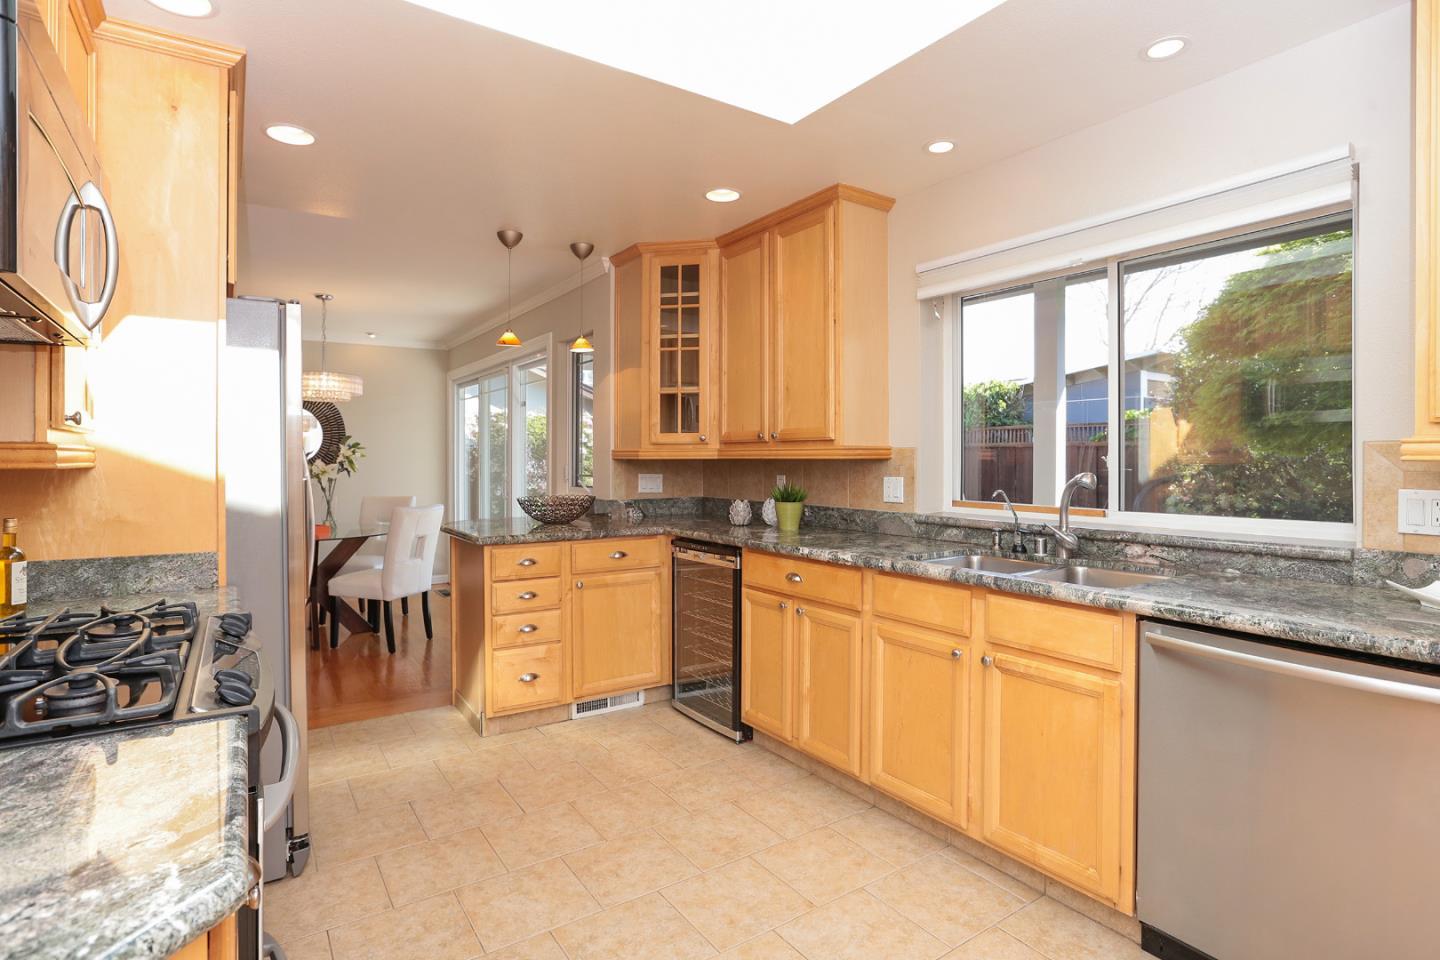 Additional photo for property listing at 1561 Melba Ct  MOUNTAIN VIEW, CALIFORNIA 94040